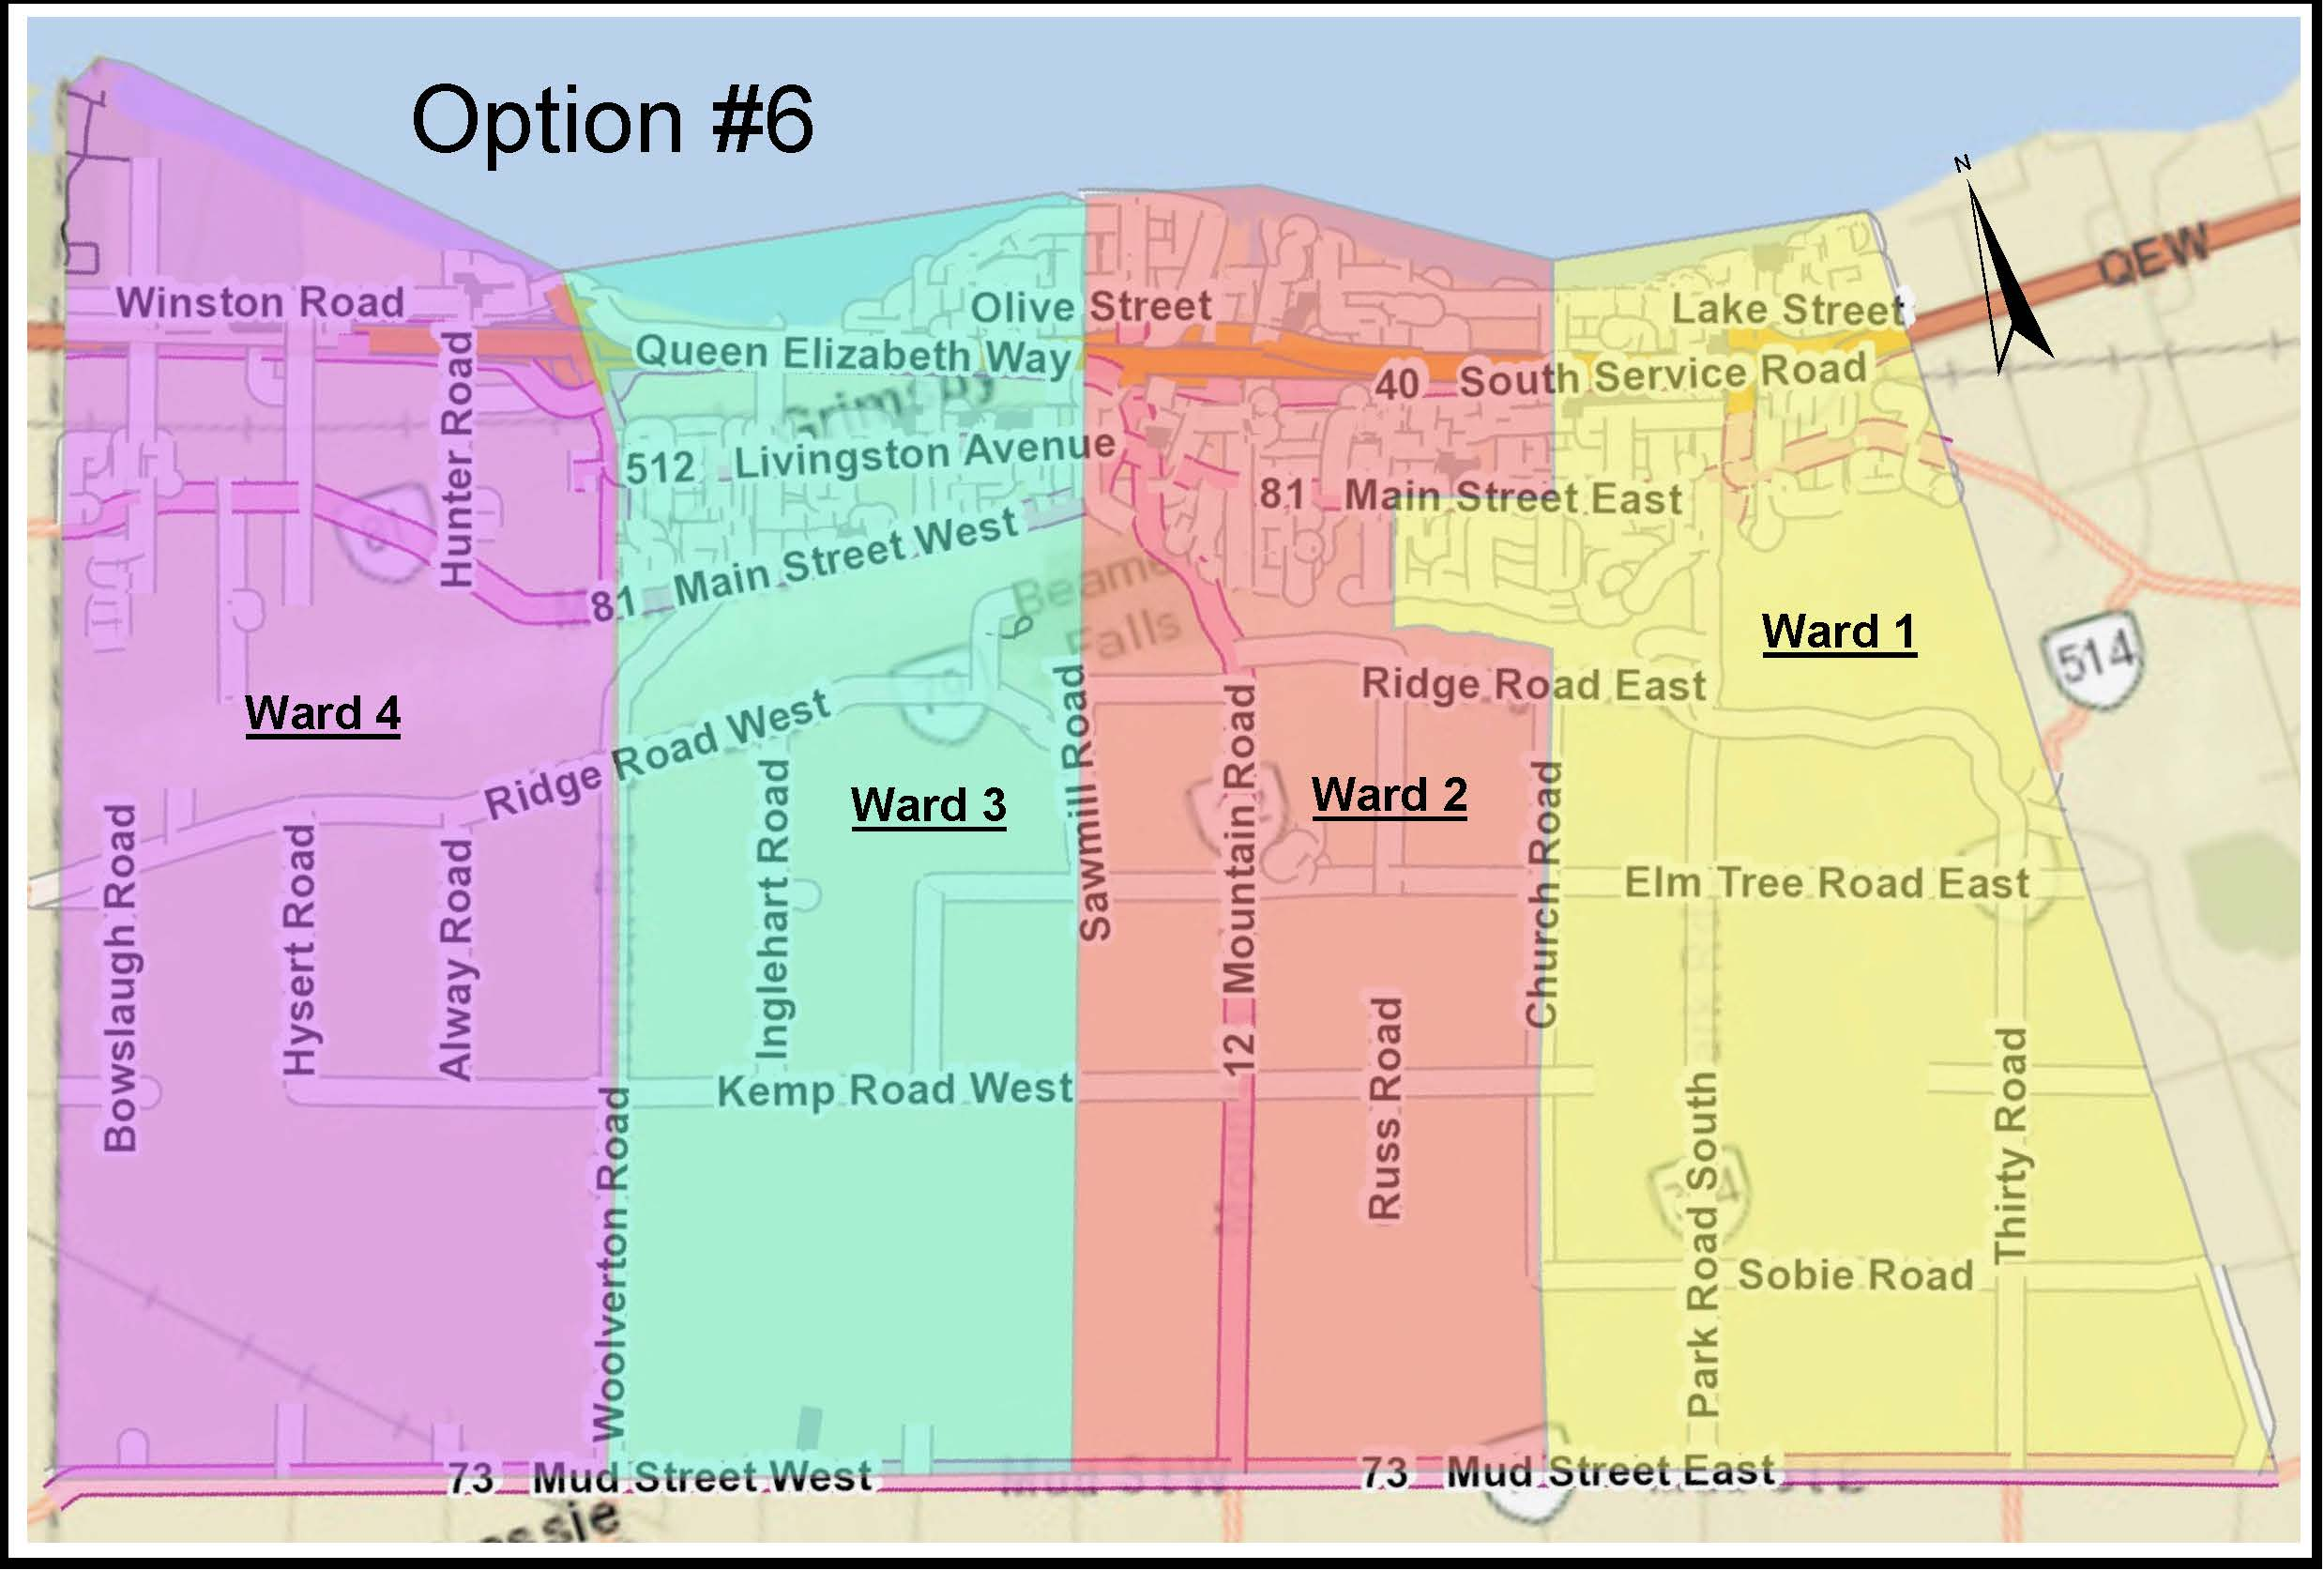 Ward Boundary Map Option 6